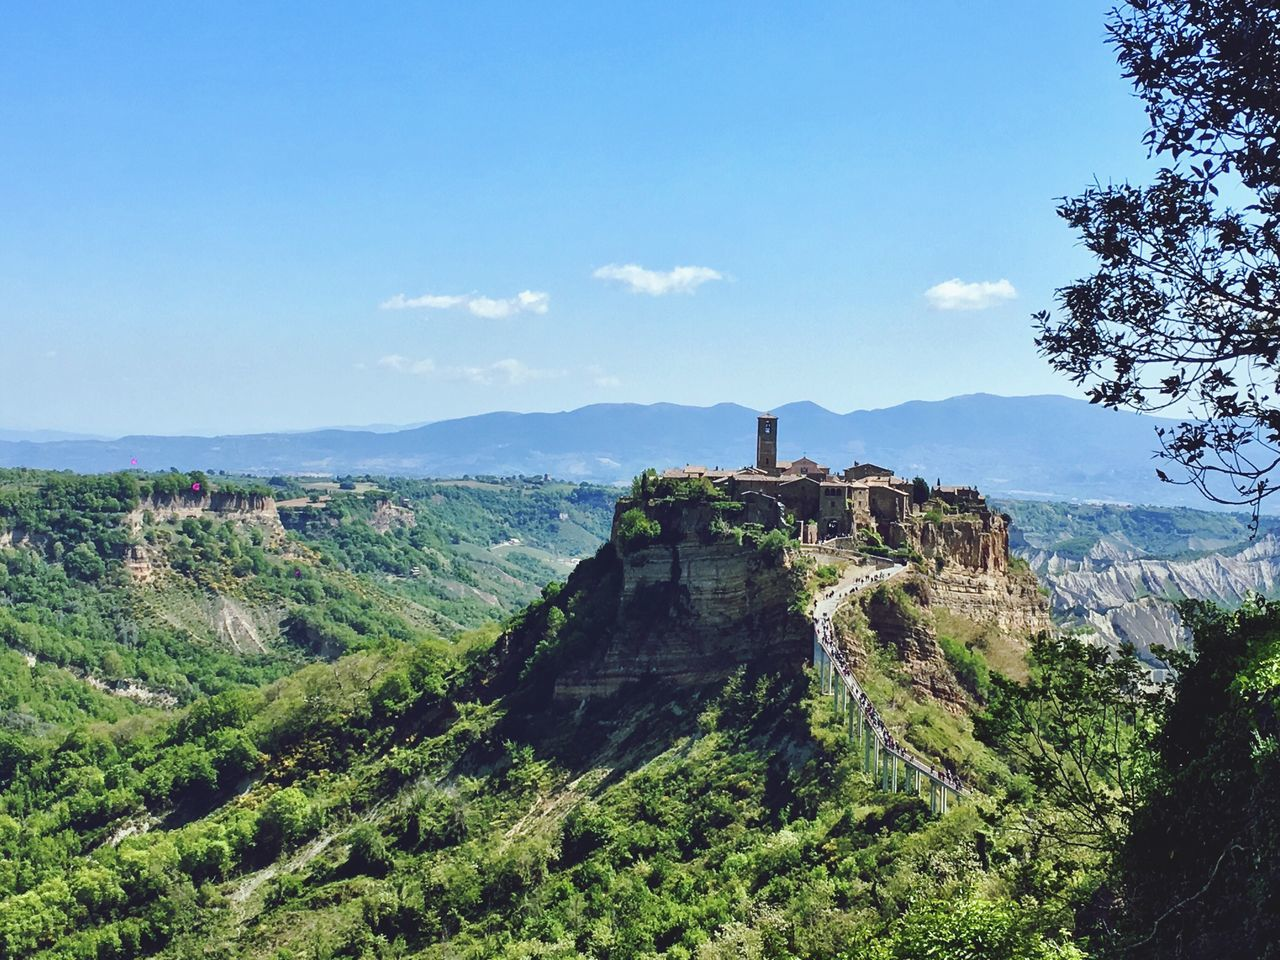 Visiting the Dying City : Civita Di Bagnoregio - Architecture Nature Travel Destinations Beauty In Nature Town Tuscany The Great Outdoors - 2017 EyeEm Awards The Great Outdoors - 2017 EyeEm Awards The Architect - 2017 EyeEm Awards